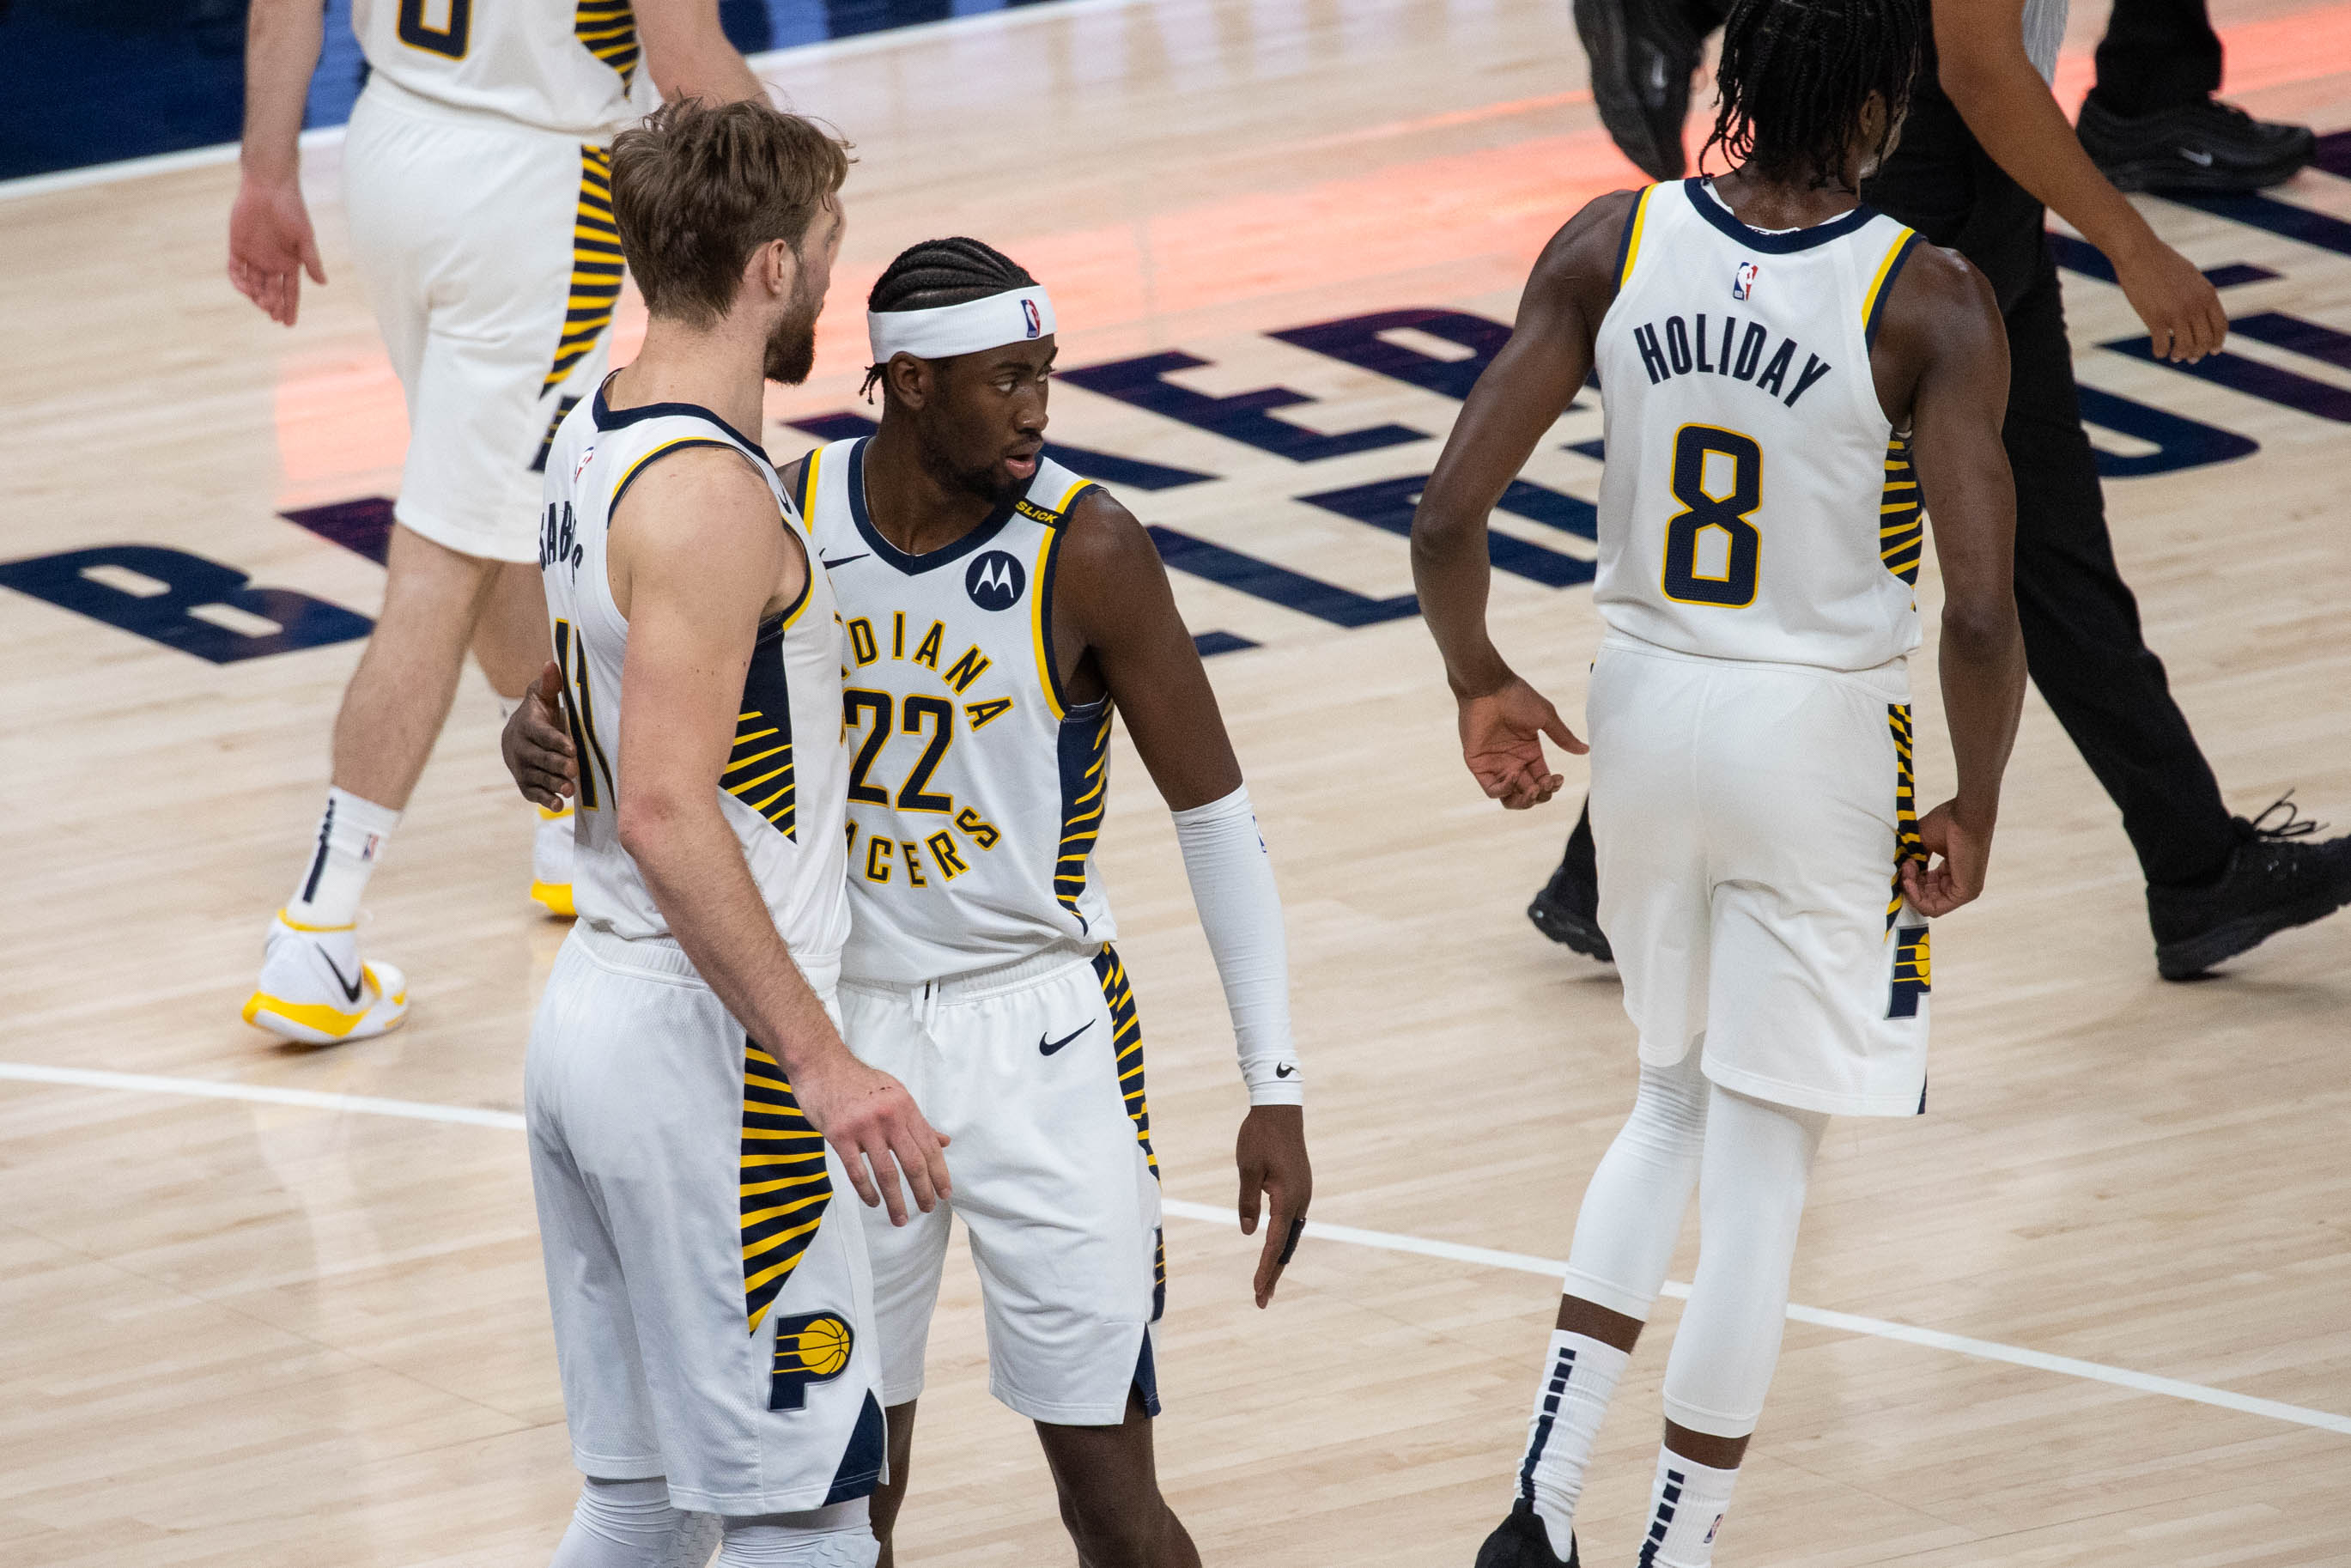 May 6, 2021; Indianapolis, Indiana, USA; Indiana Pacers forward Domantas Sabonis (11) and Indiana Pacers guard Caris LeVert (22) celebrate the win over Atlanta Hawks  at Bankers Life Fieldhouse. Mandatory Credit: Trevor Ruszkowski-USA TODAY Sports